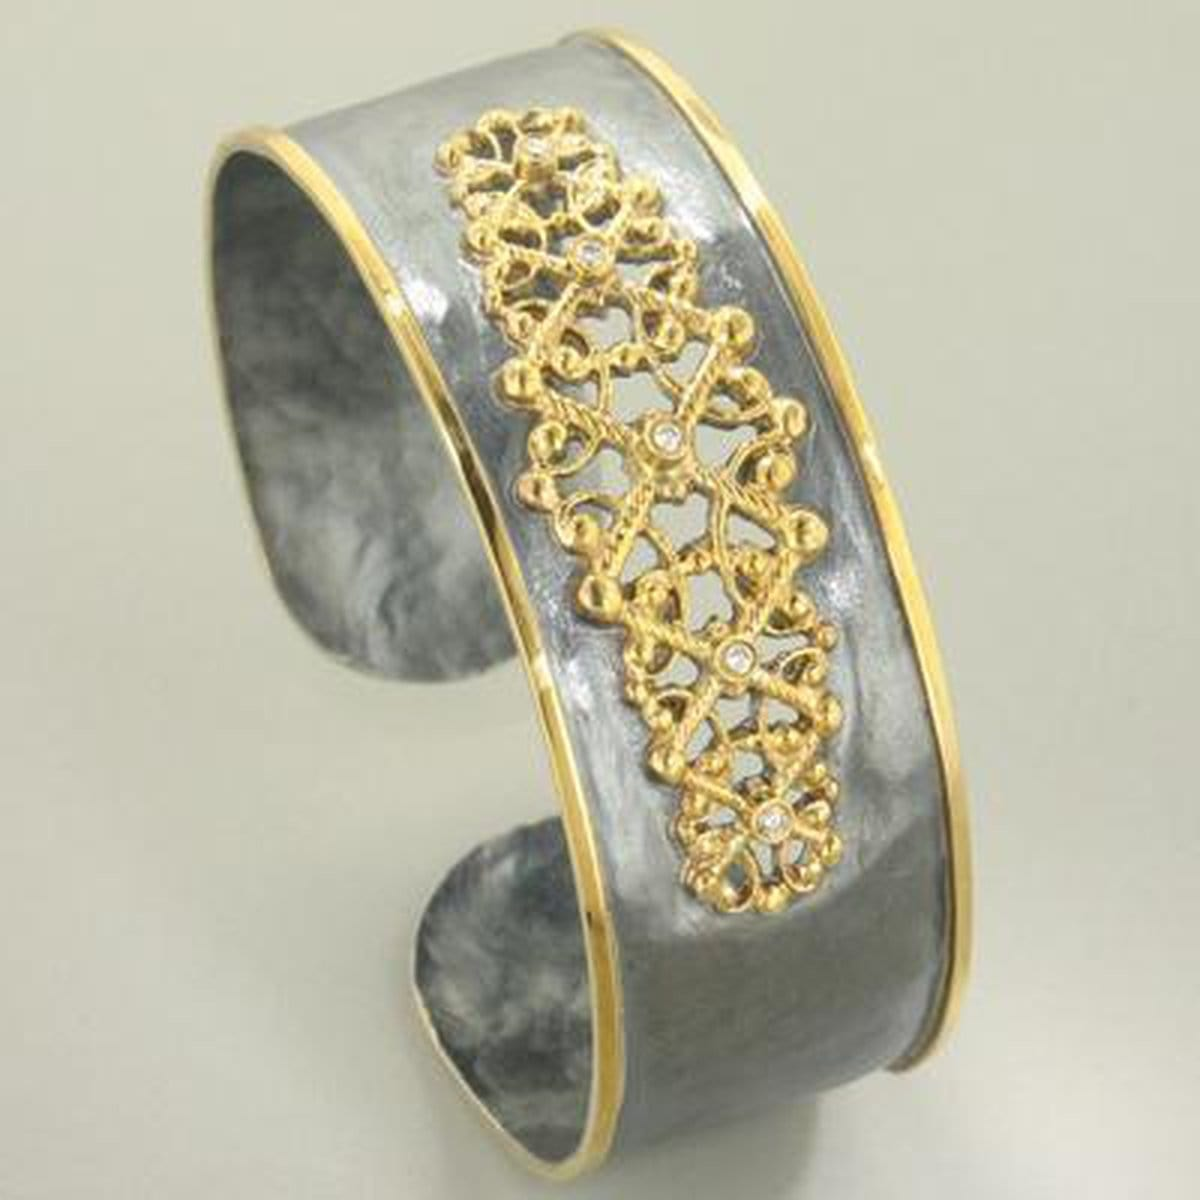 Marika Diamond, Sterling Silver & 18k Gold Cuff - MS18135